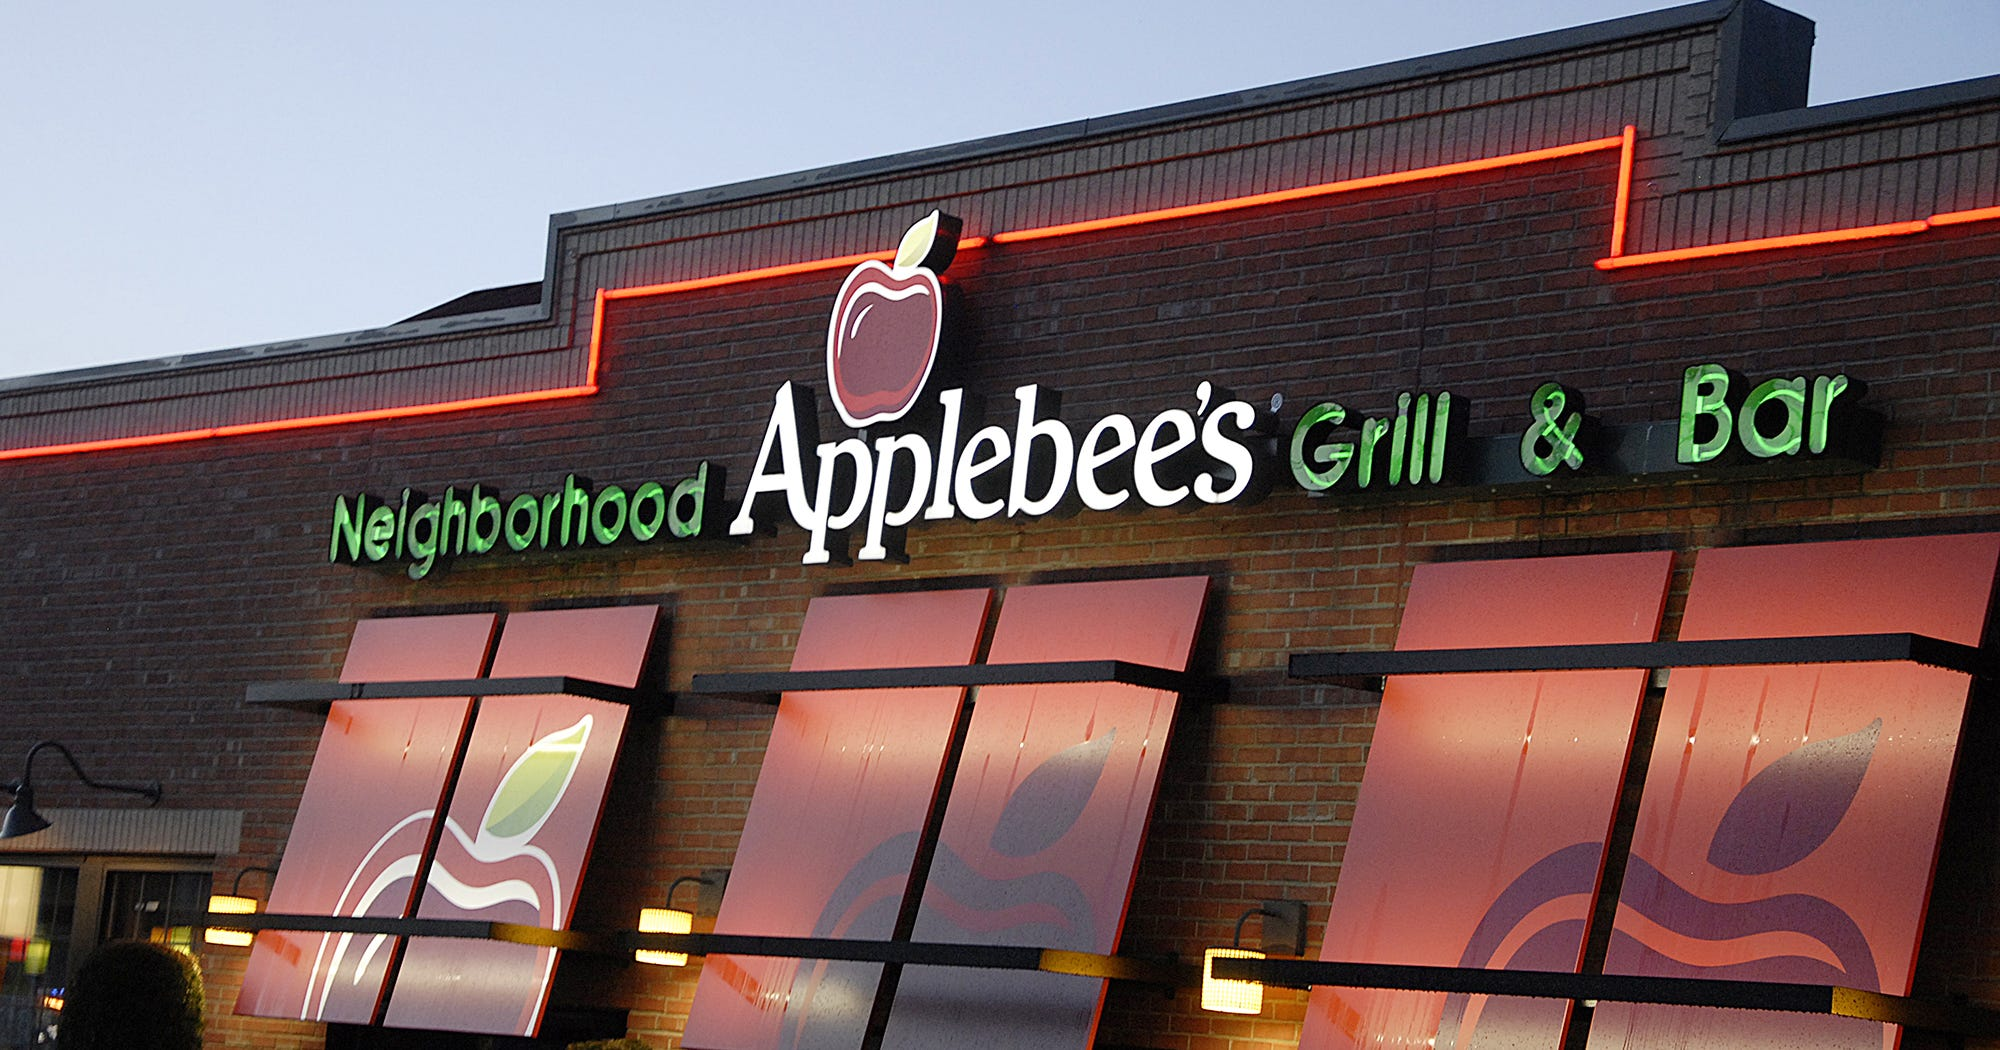 I Tried Applebee's $1 Long Island Iced Tea & Lived To Tell The Tale